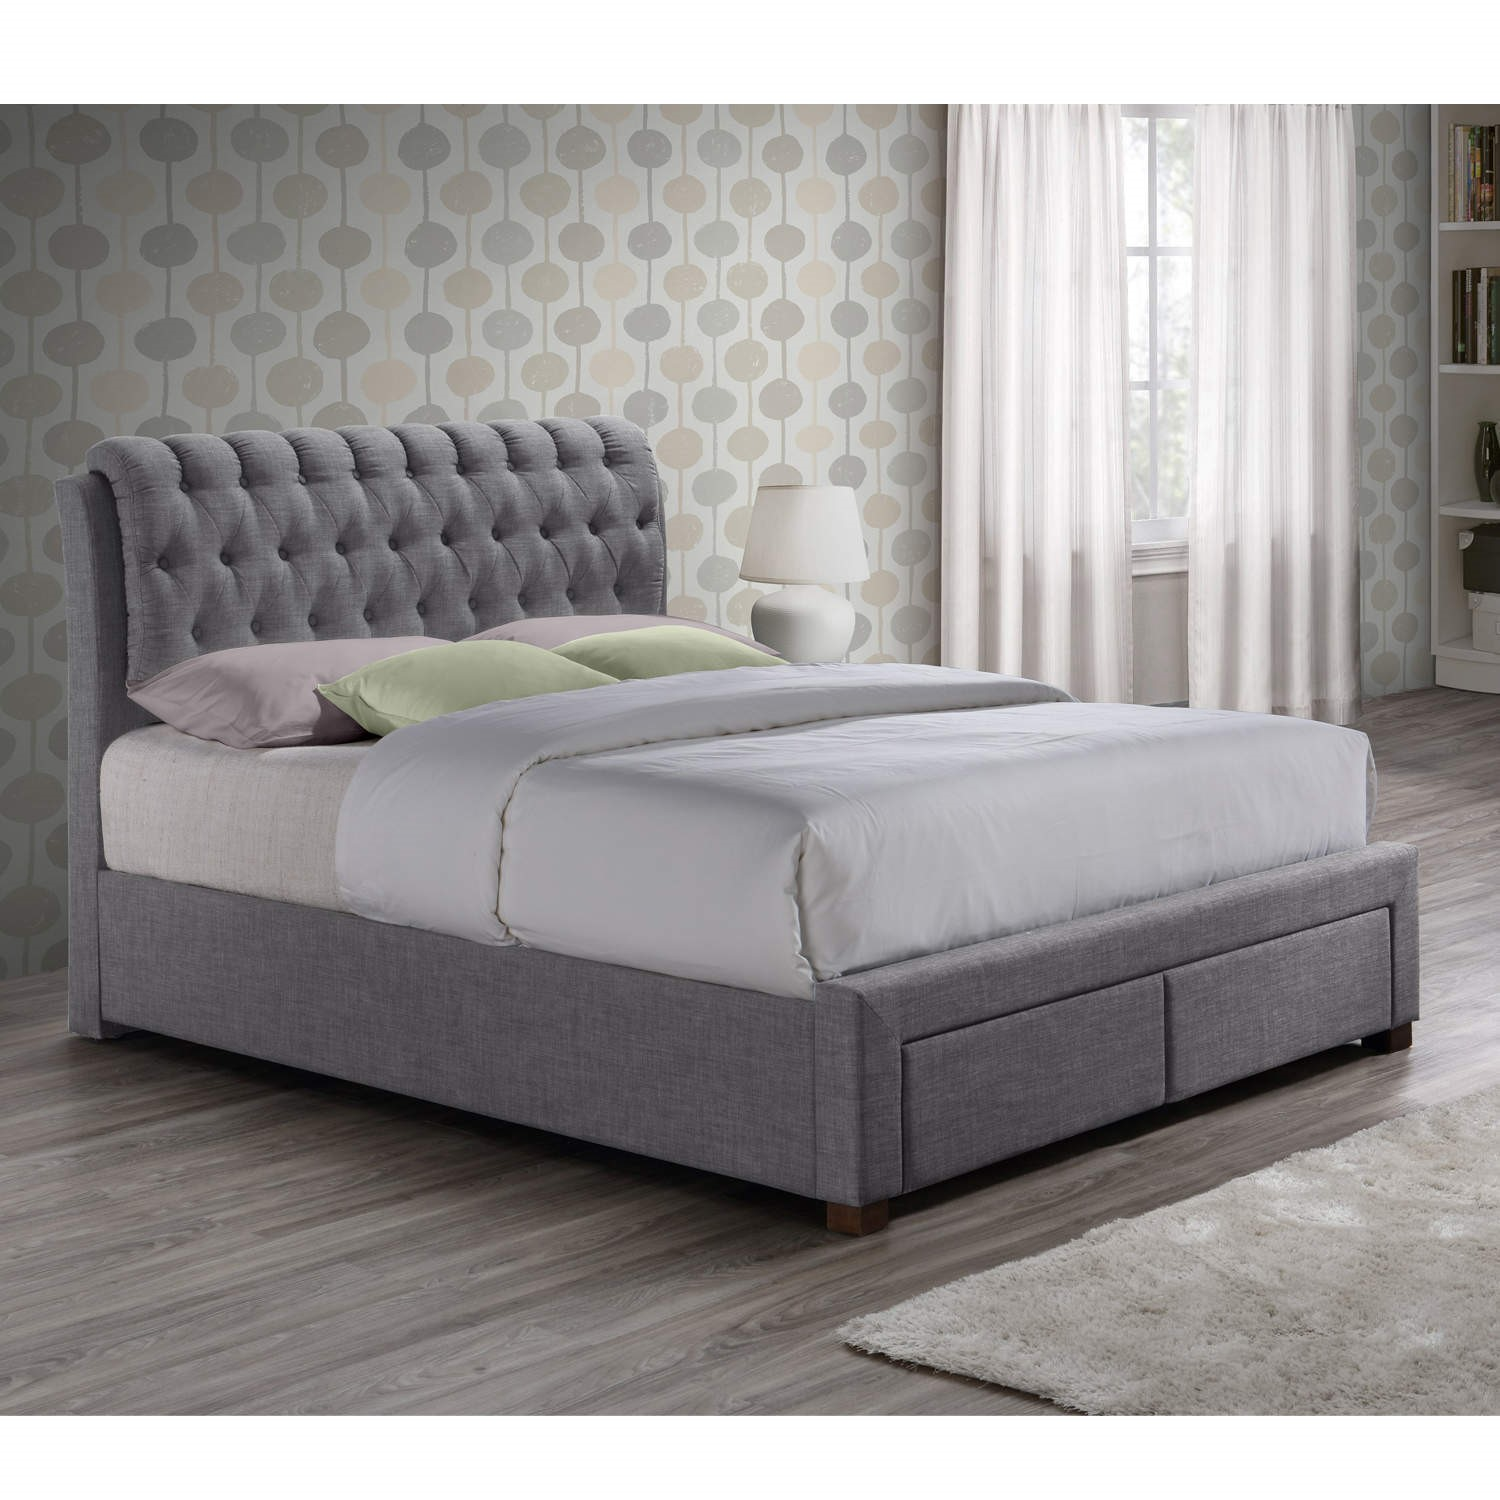 Birlea Valentino 2 Drawer Double Bed Grey Furniture123